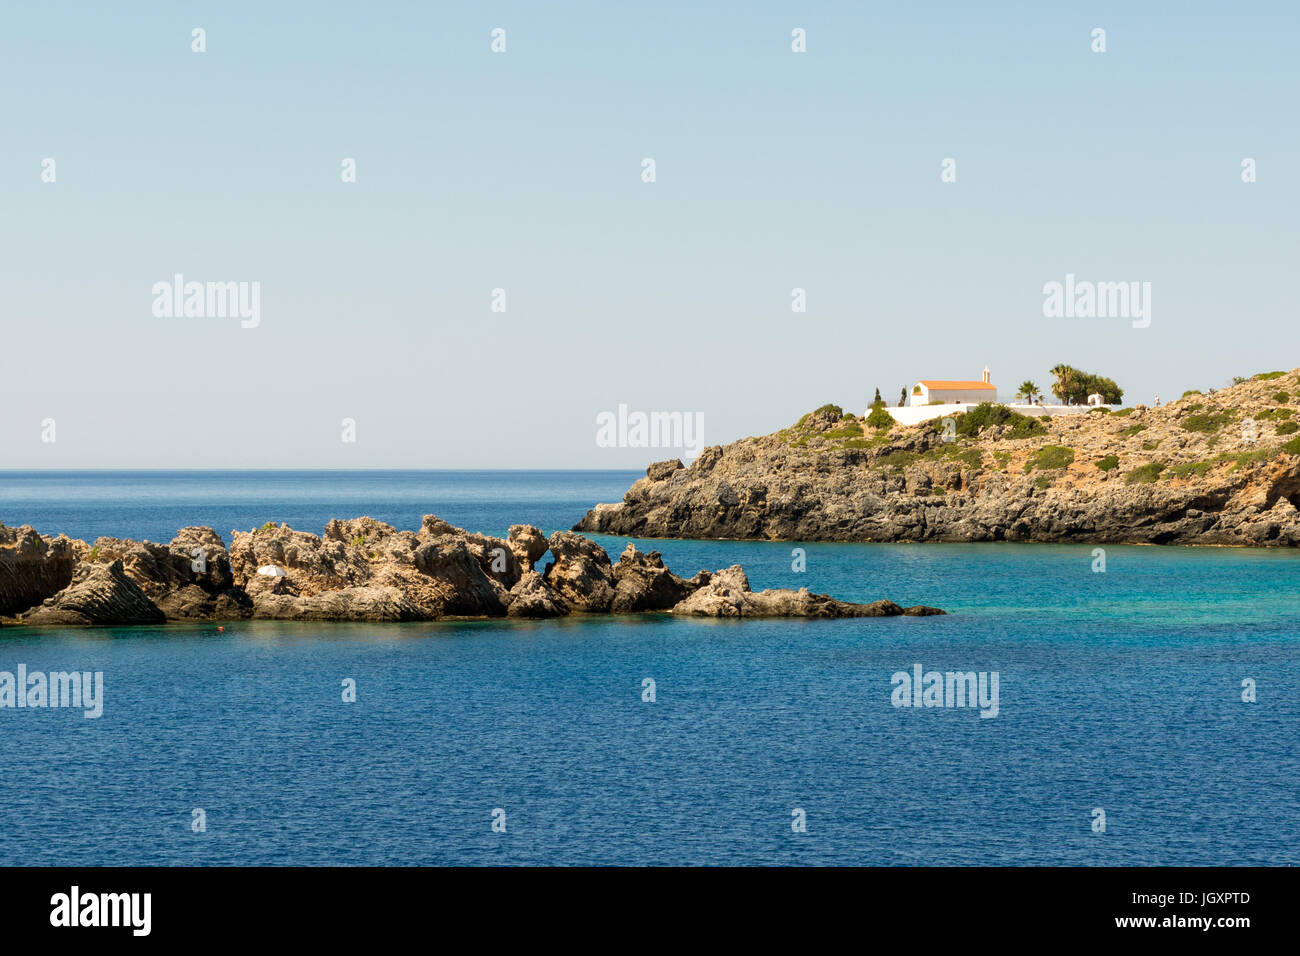 A sunbather finds solitude on a small islands of the south coast of western Crete, Greece, at Loutro. A solitary - Stock Image